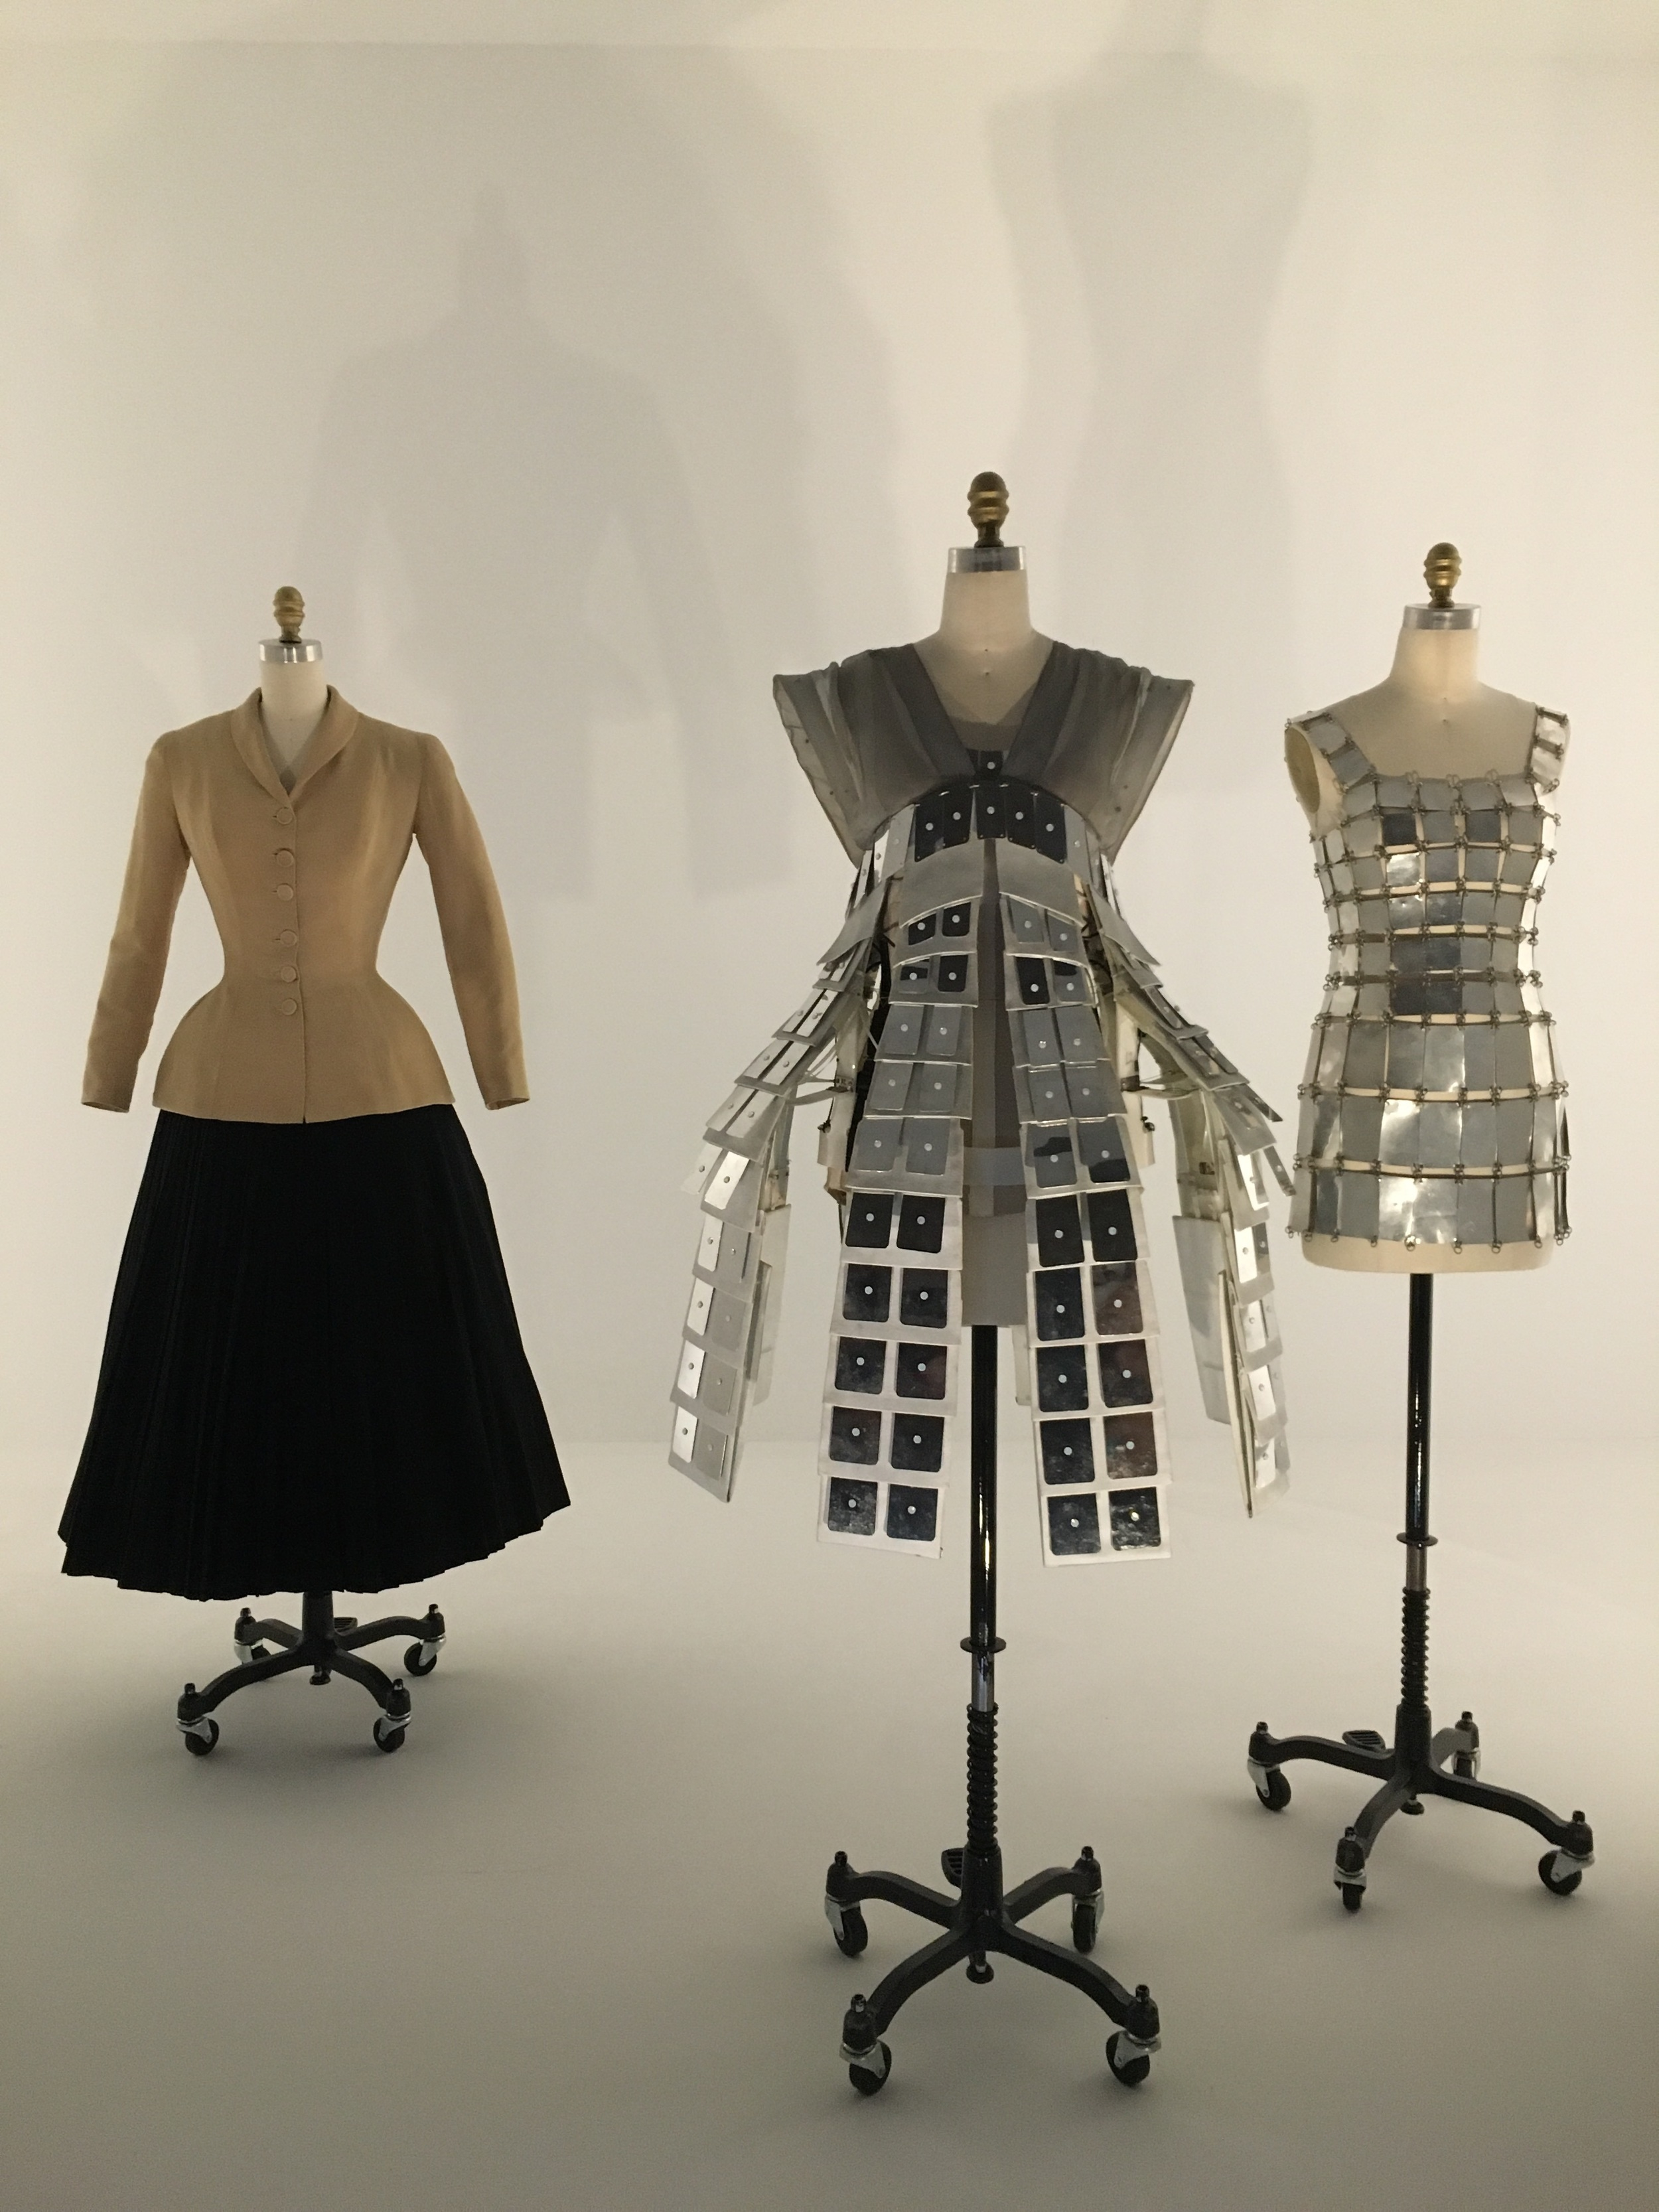 House of Dior  Christian Dior  SS 1947, haute couture  Machine-sewn beige tussah silk plain weave, hand-stitched bound buttonholes, hand-pad-stitched interlining    Hussein Chalayan  SS 2007,prêt-à-porter  Machine-sewn gray silk organza bodice; machine-sewn gray cotton-synthetic sateen tabs; aluminum plaques with hand glued Swarovski crystals; machine-molded plastic understructure, machine-sewn boned foundation threaded with monofilament wire, pulleys, and electronically controlled, geared motor components    Paco Rabanne  1967, haute couture  Machine-cut silver aluminum, hand-punched and linked with silver metal jump rings